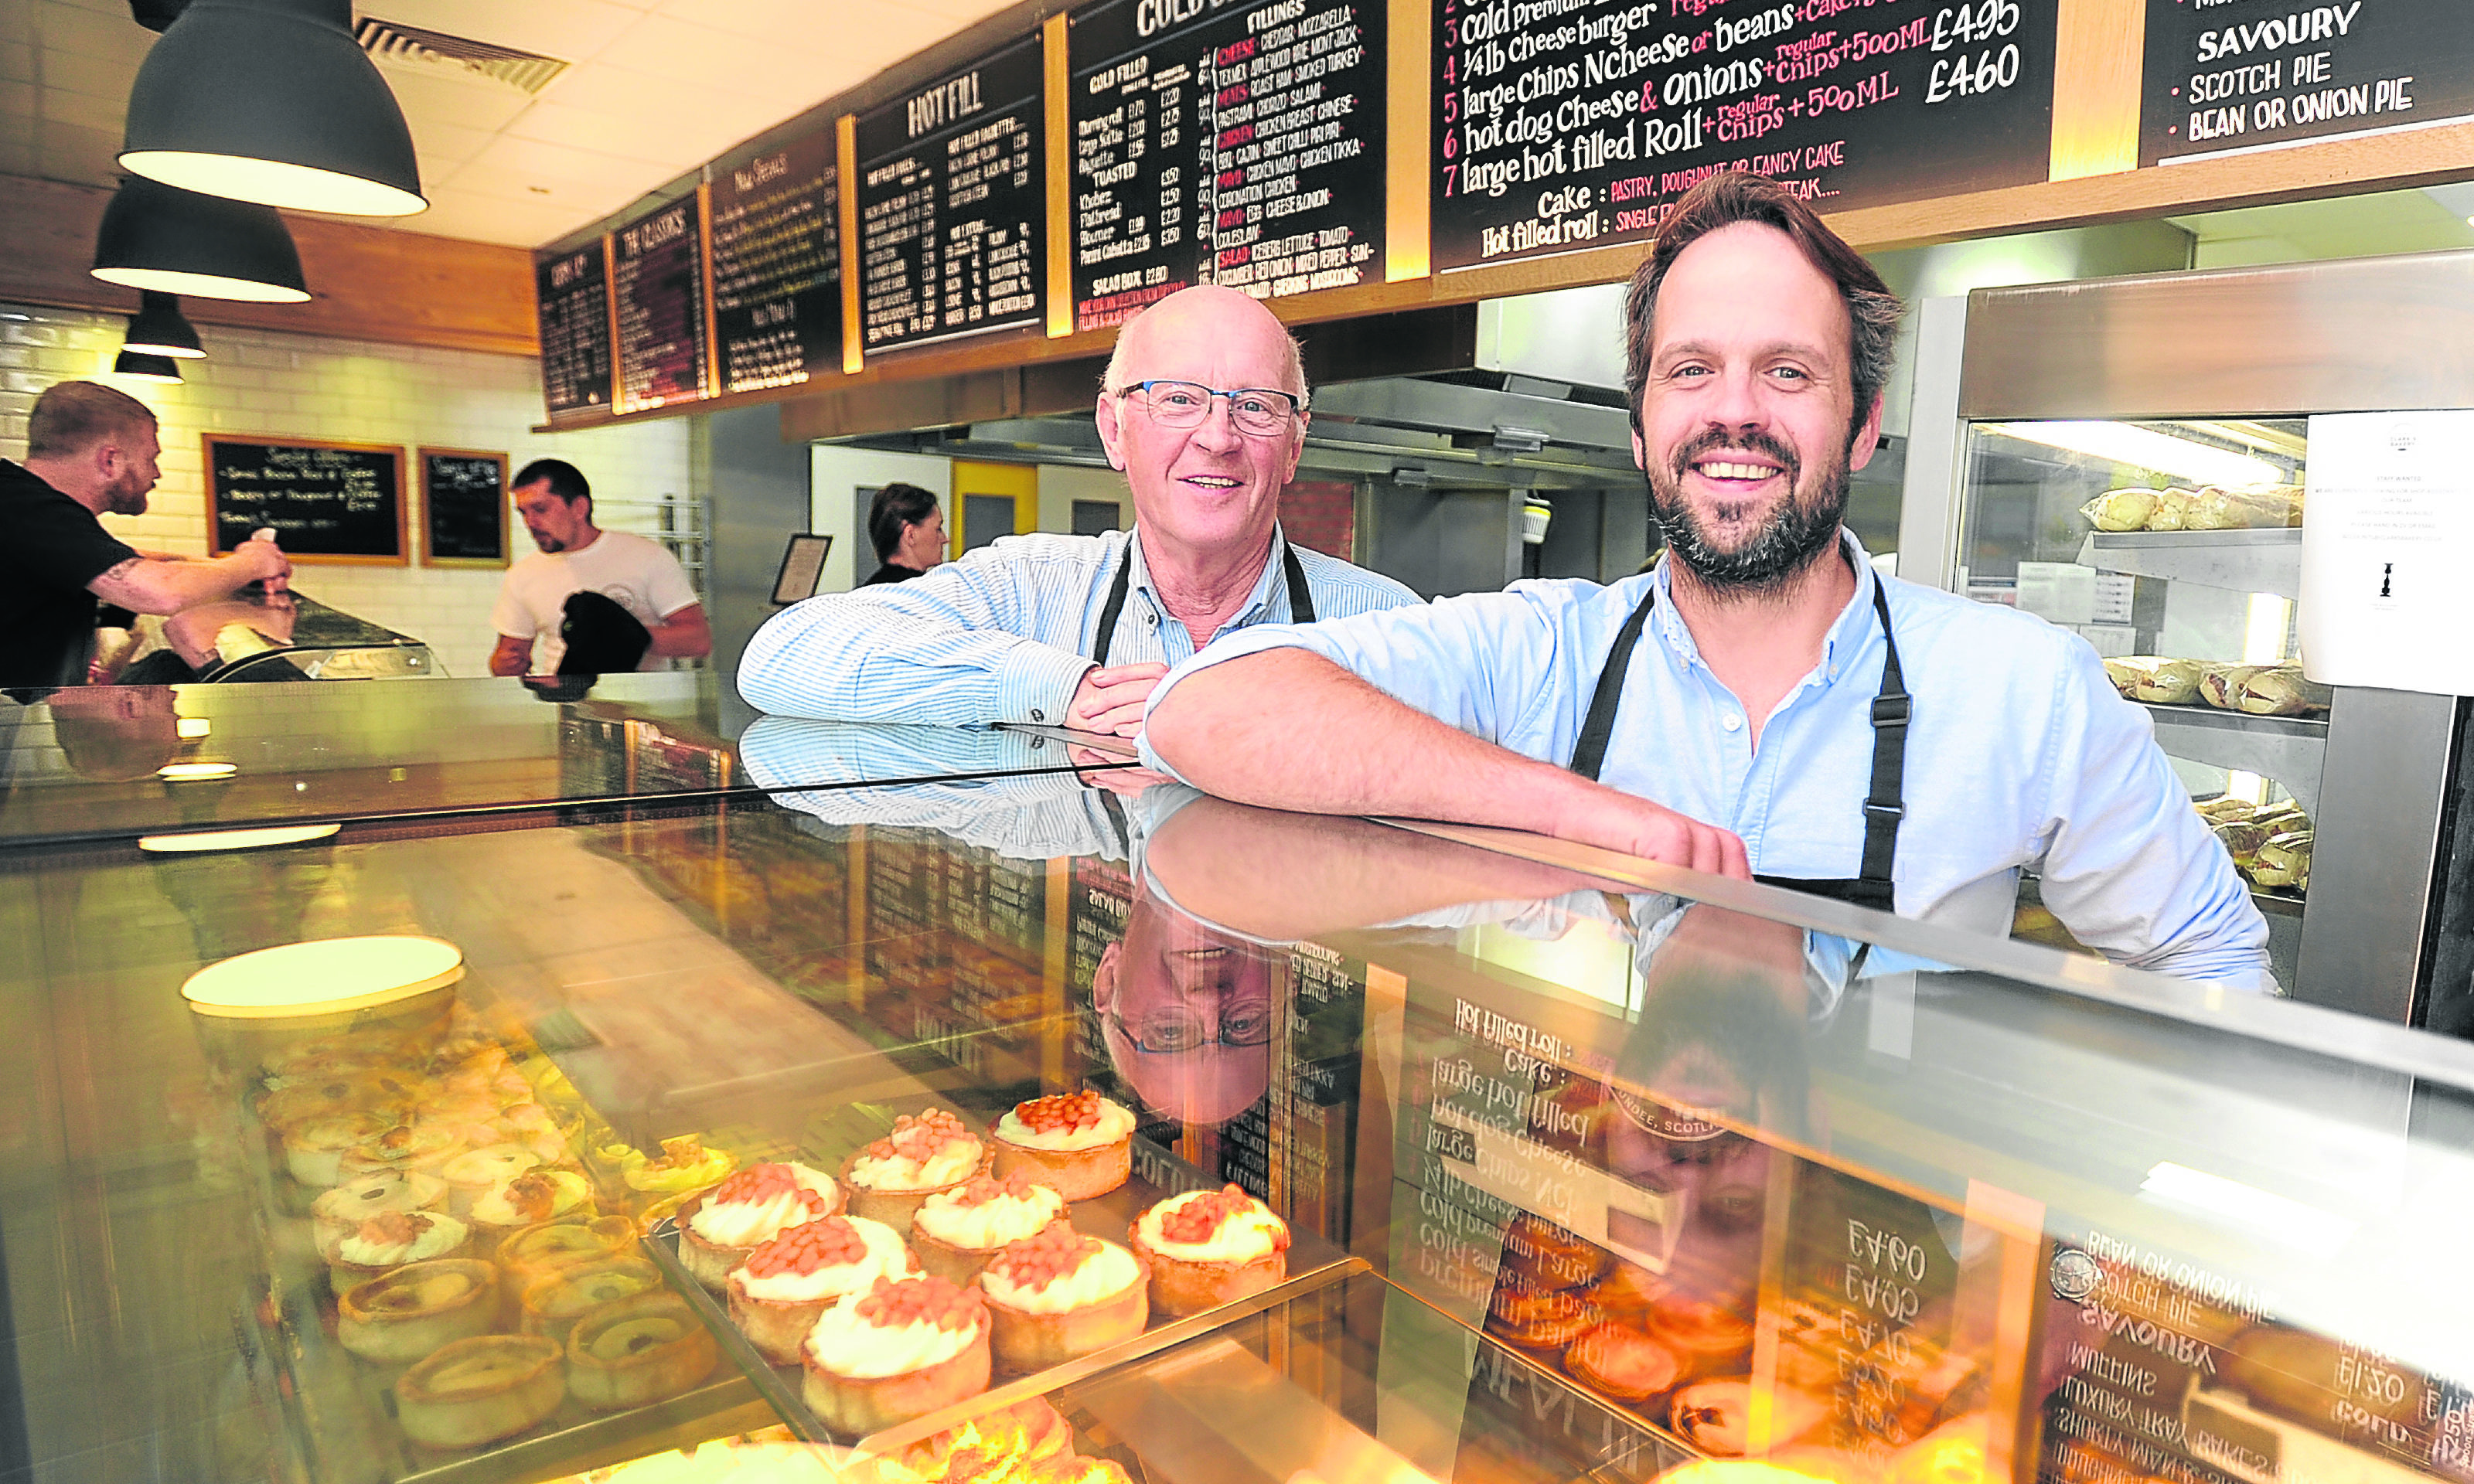 Owner Jonathon Clark (right) with father Alan Clark in the bakery shop on Annfield Street.